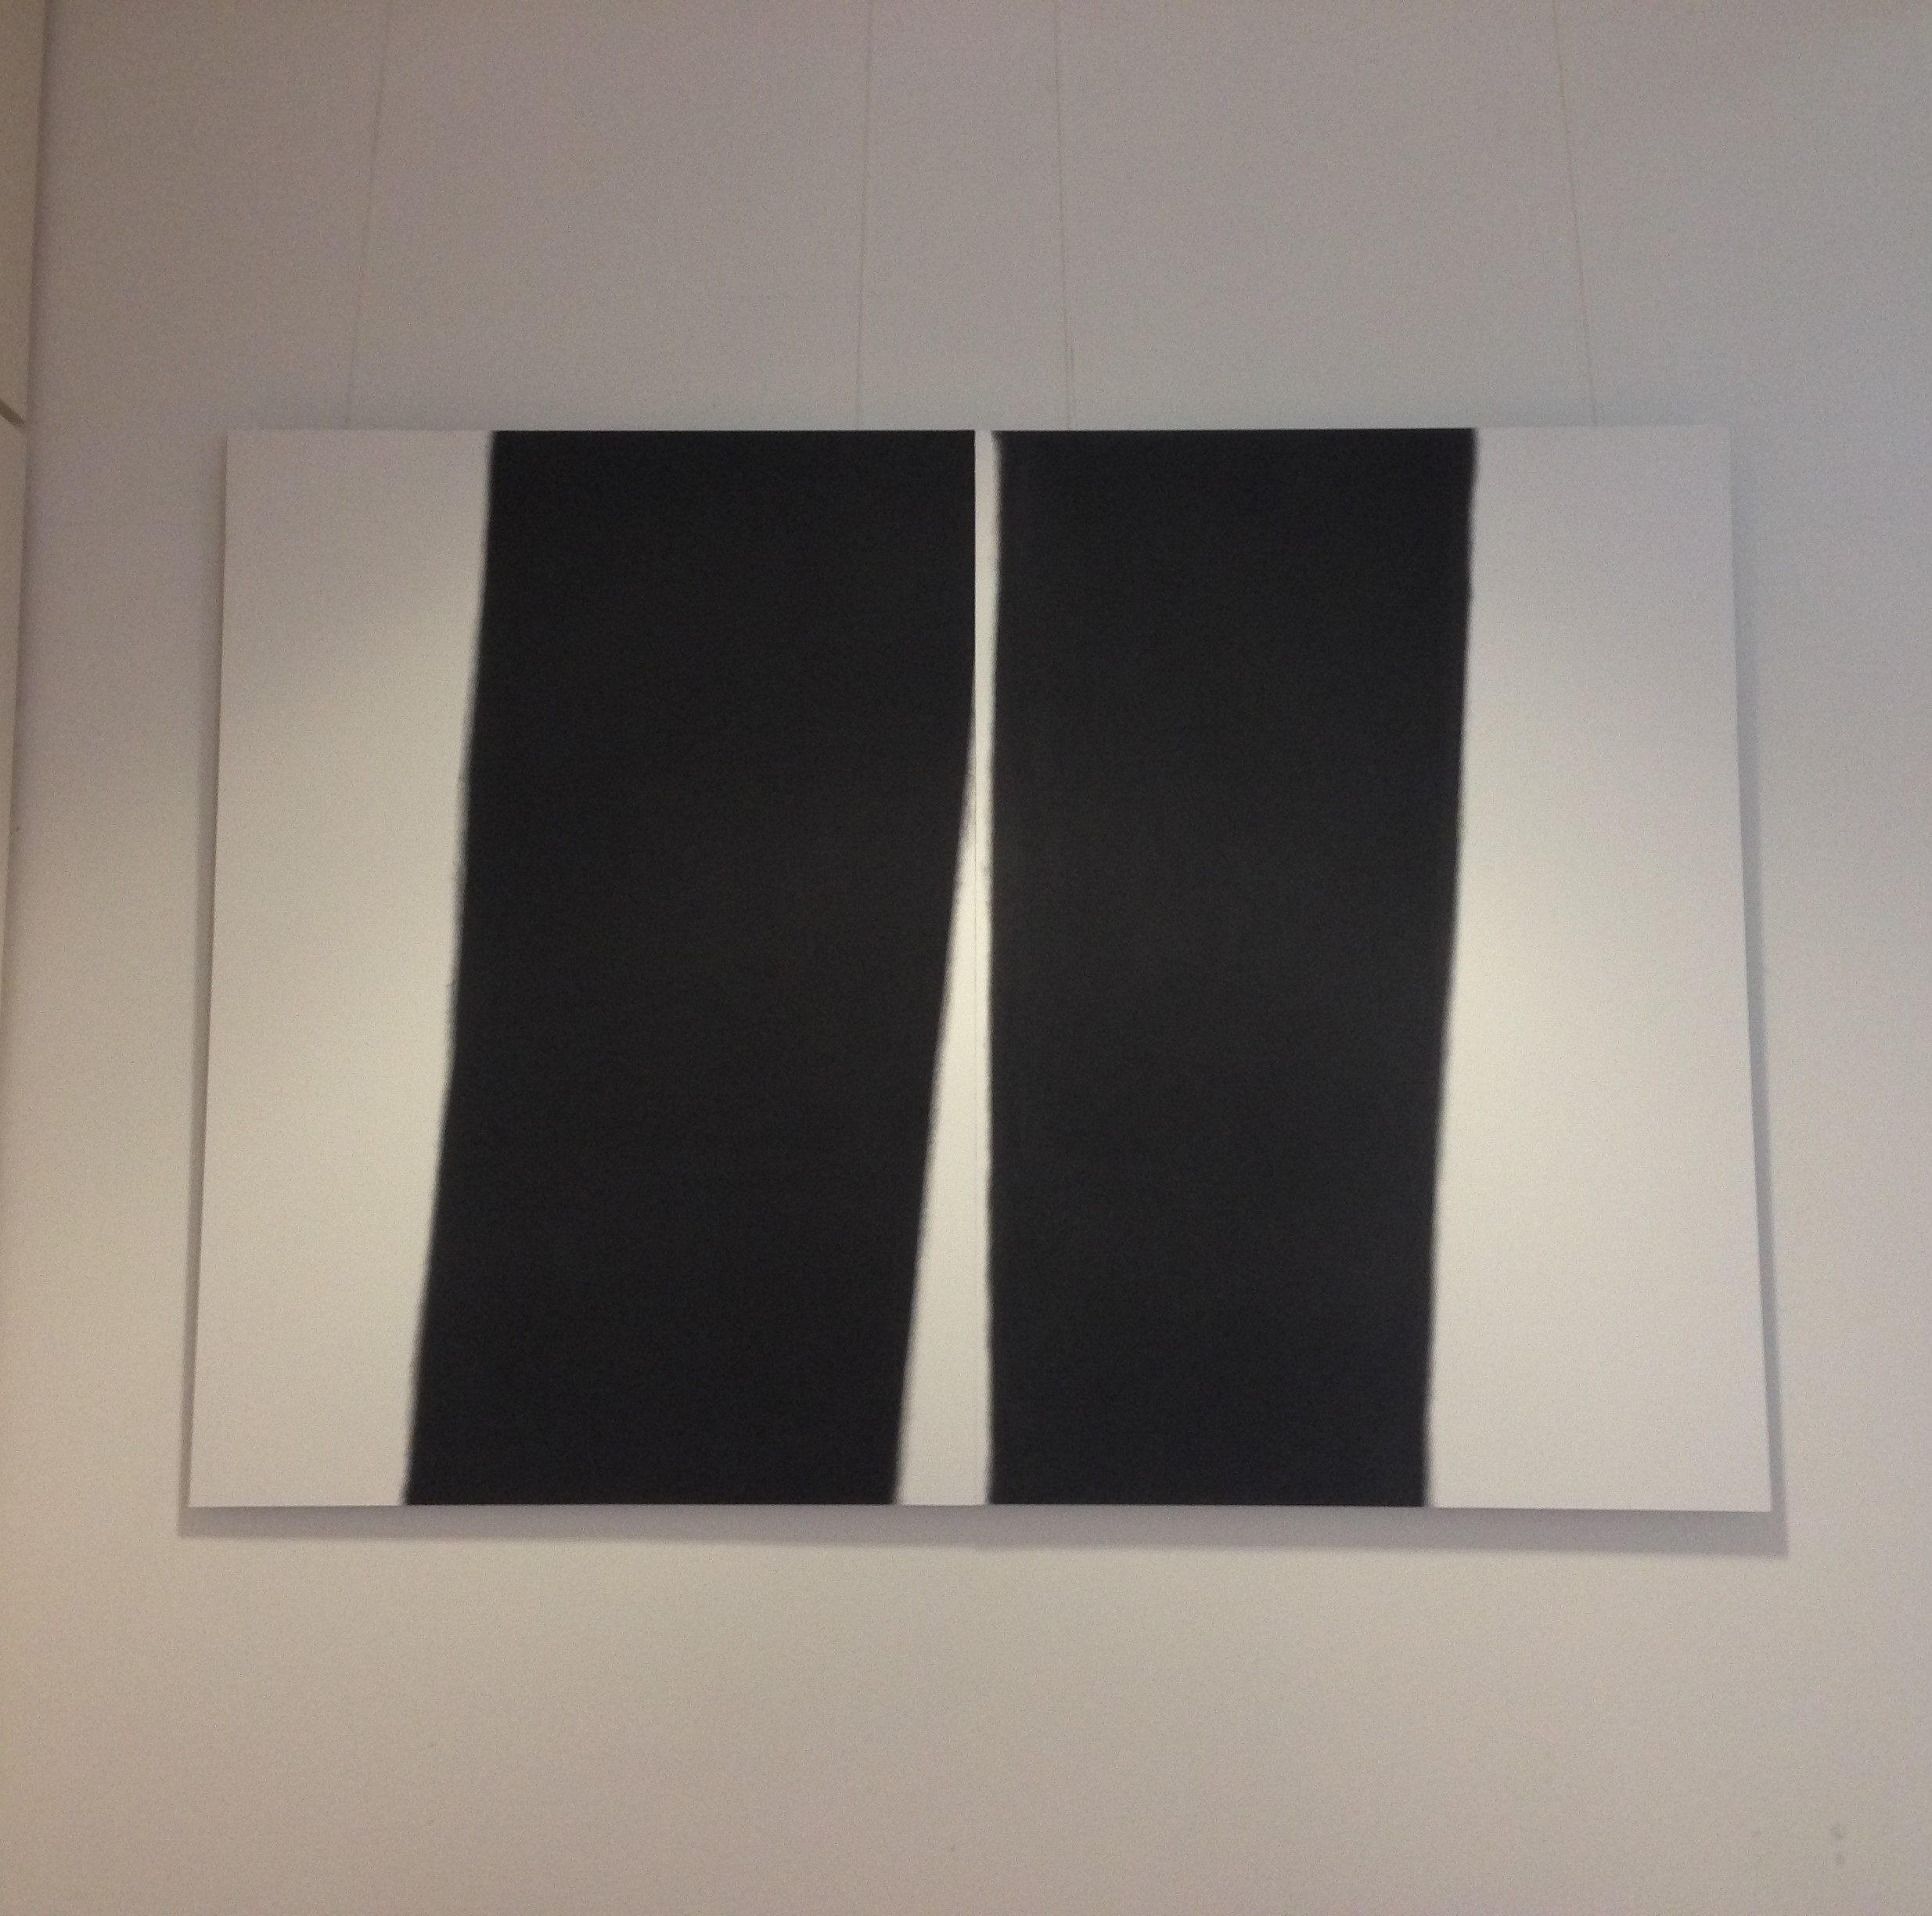 2 A0 pieces hung together (there are 4 of this size in the series). These are limited edition prints and have been mounted on alumiumiun.